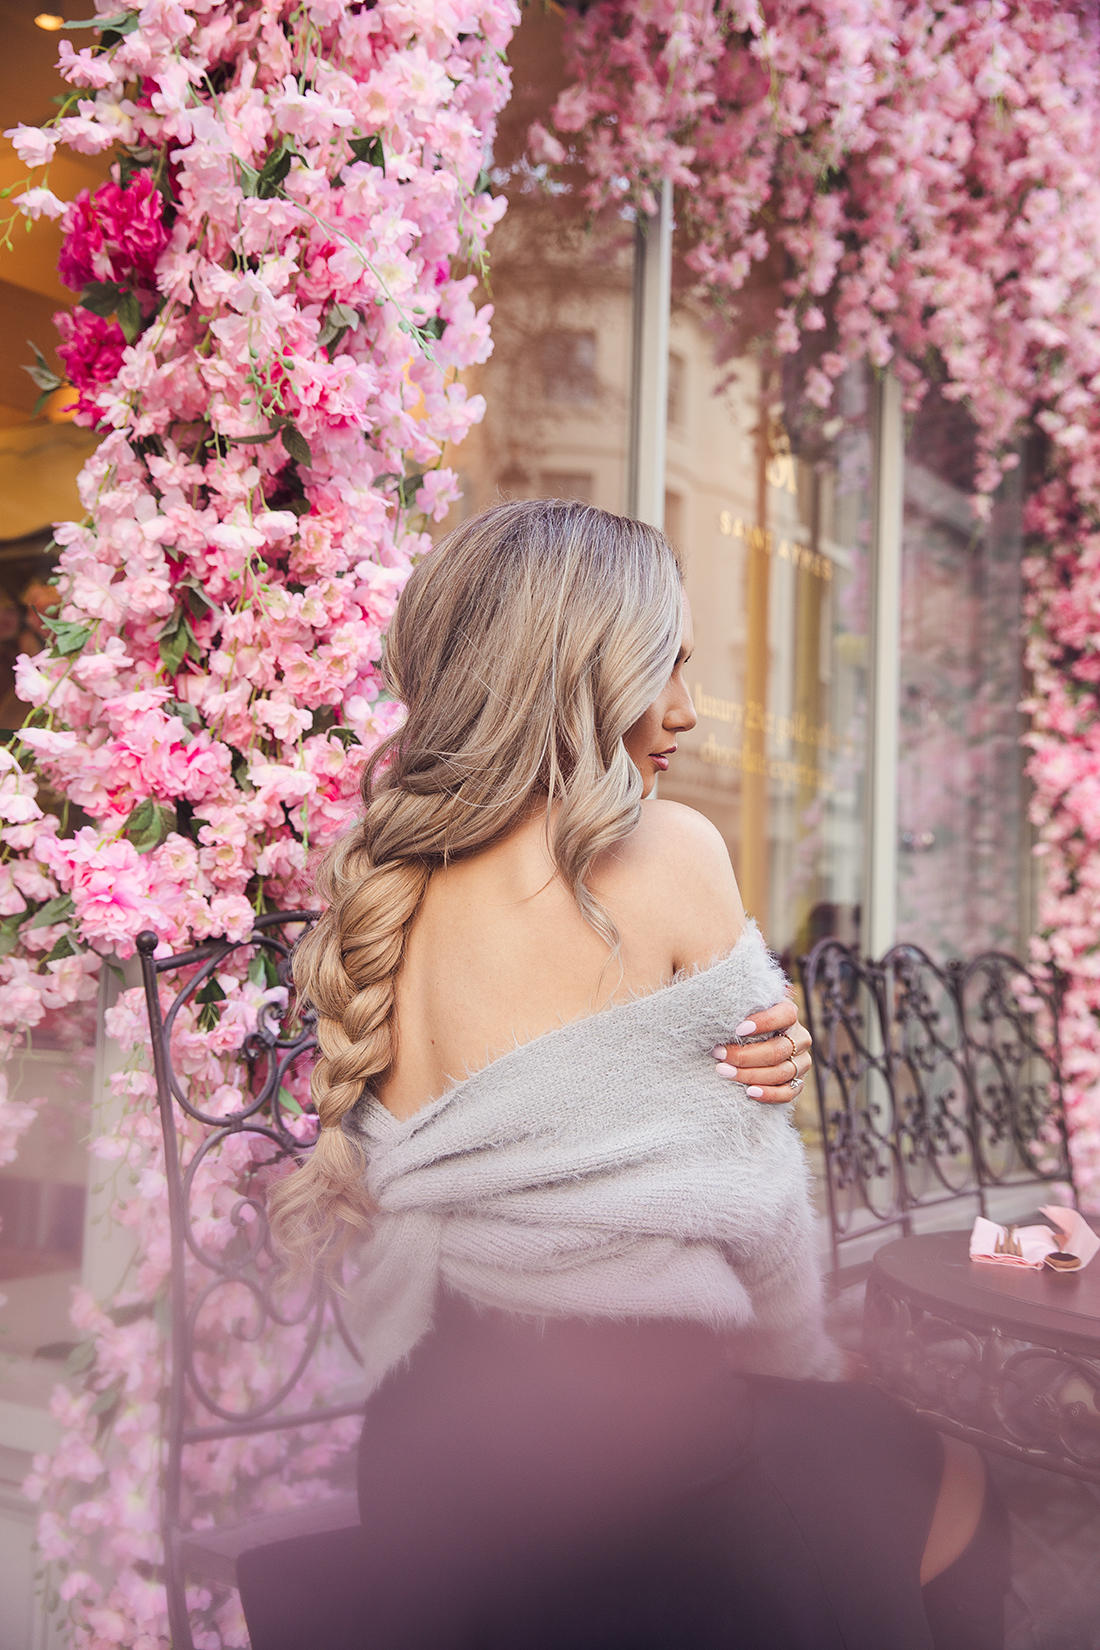 fashion blogger Stephanie Danielle photoshoot in front of floral Saint Aymes cafe by London fashion photographer Ailera Stone